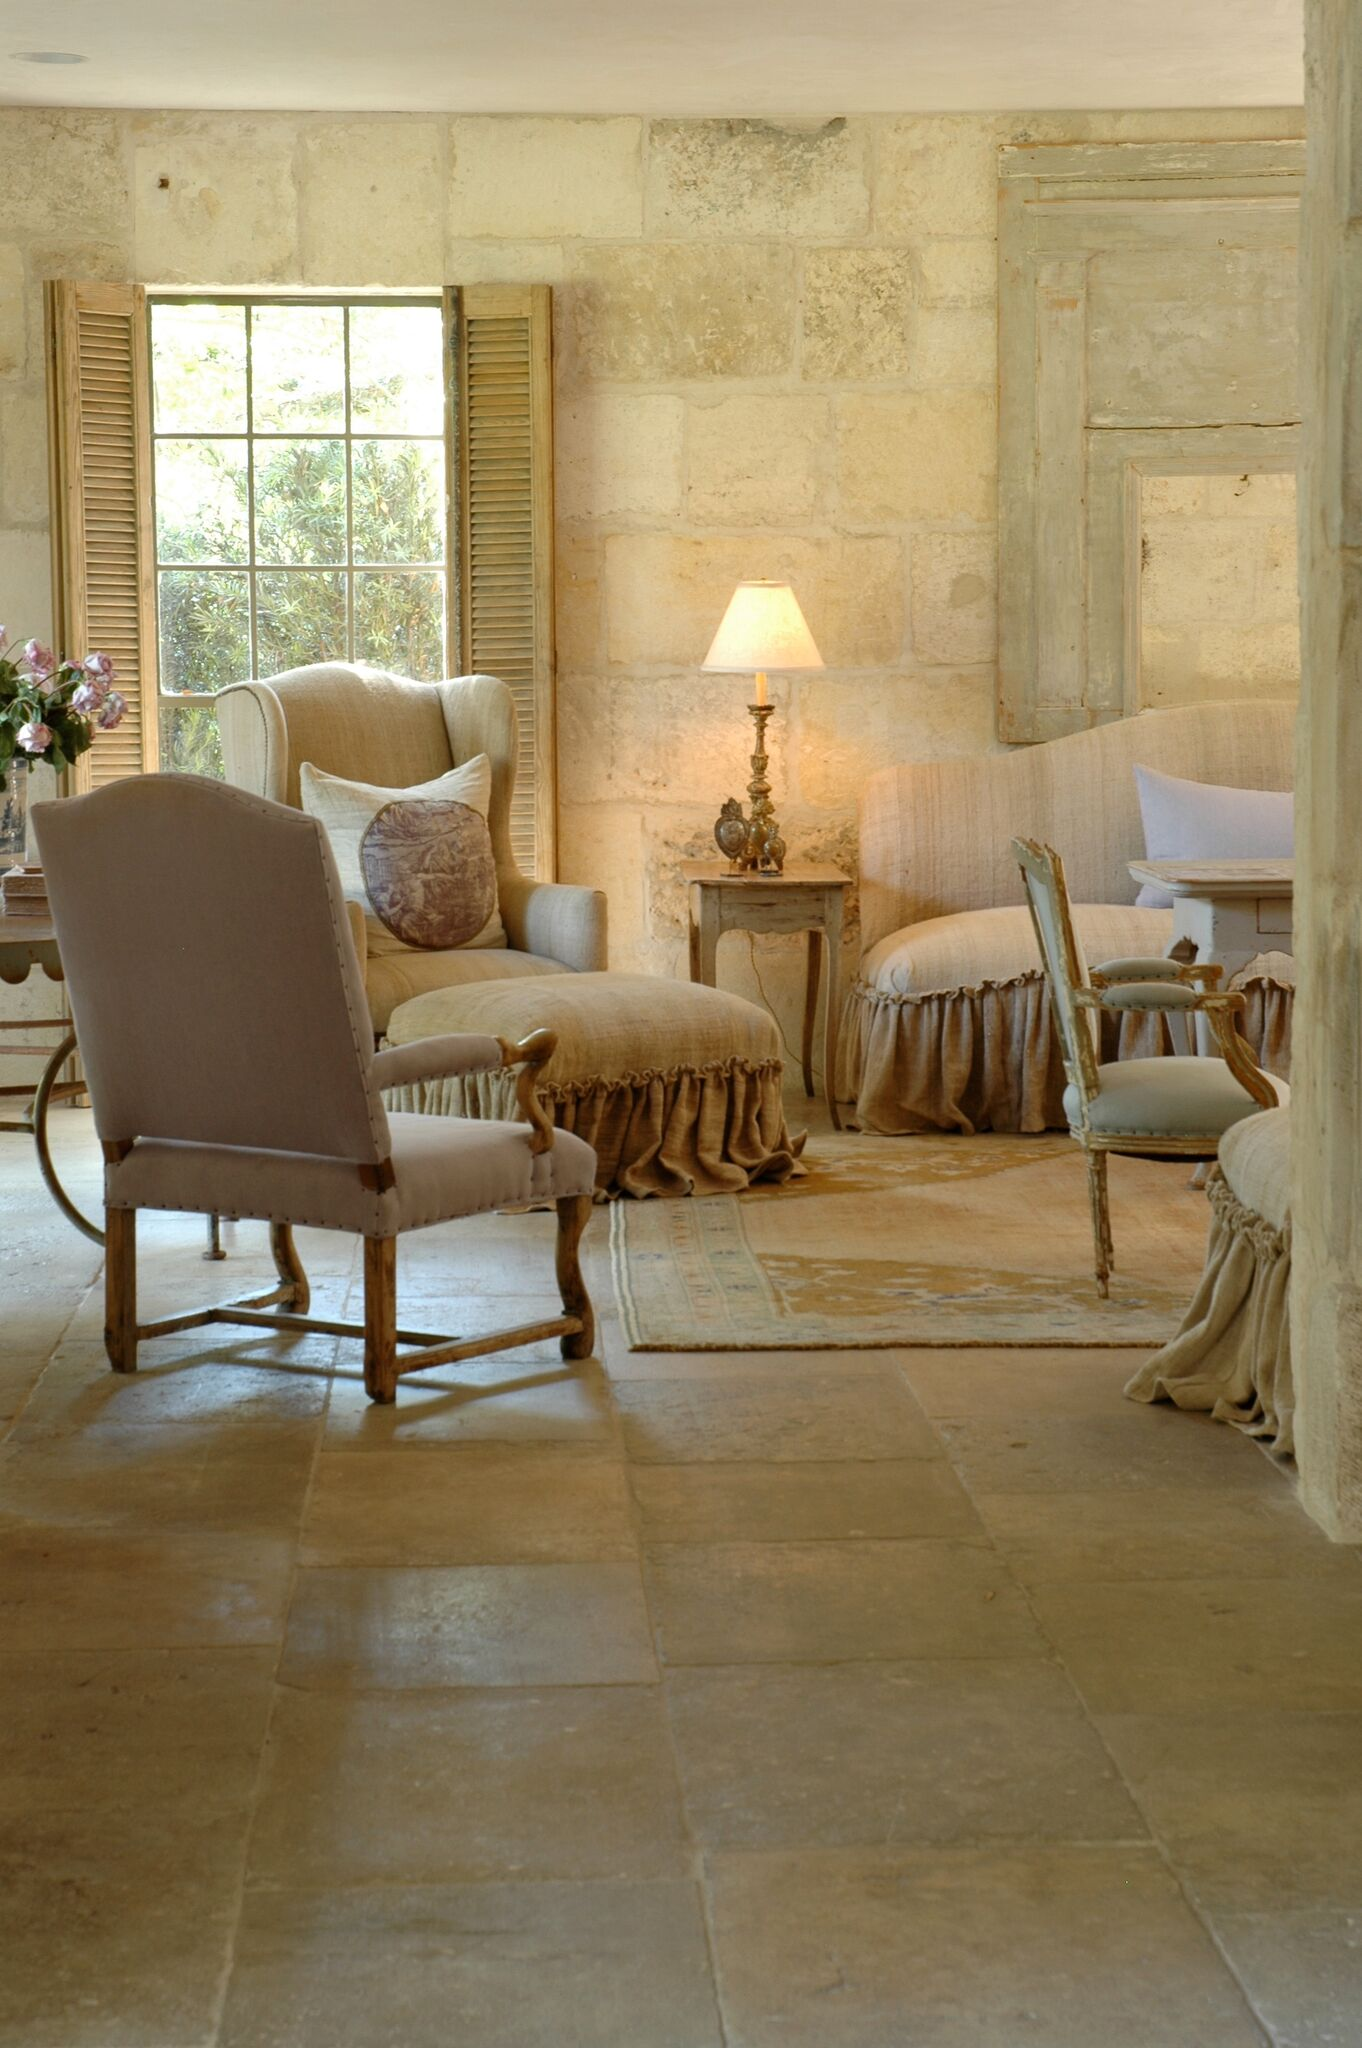 Chateau Domingue Timeless European Elegance and French farmhouse style converge in this house tour of founder Ruth Gay's home on Hello Lovely. Reclaimed stone, antique doors and mantels, and one of a kind architectural elements. #housetour #frenchcountry #frenchfarmhouse #europeanfarmhouse #chateaudomingue #rusticdecor #pamelapierce #elegantdecor #livingroom #ruthgay